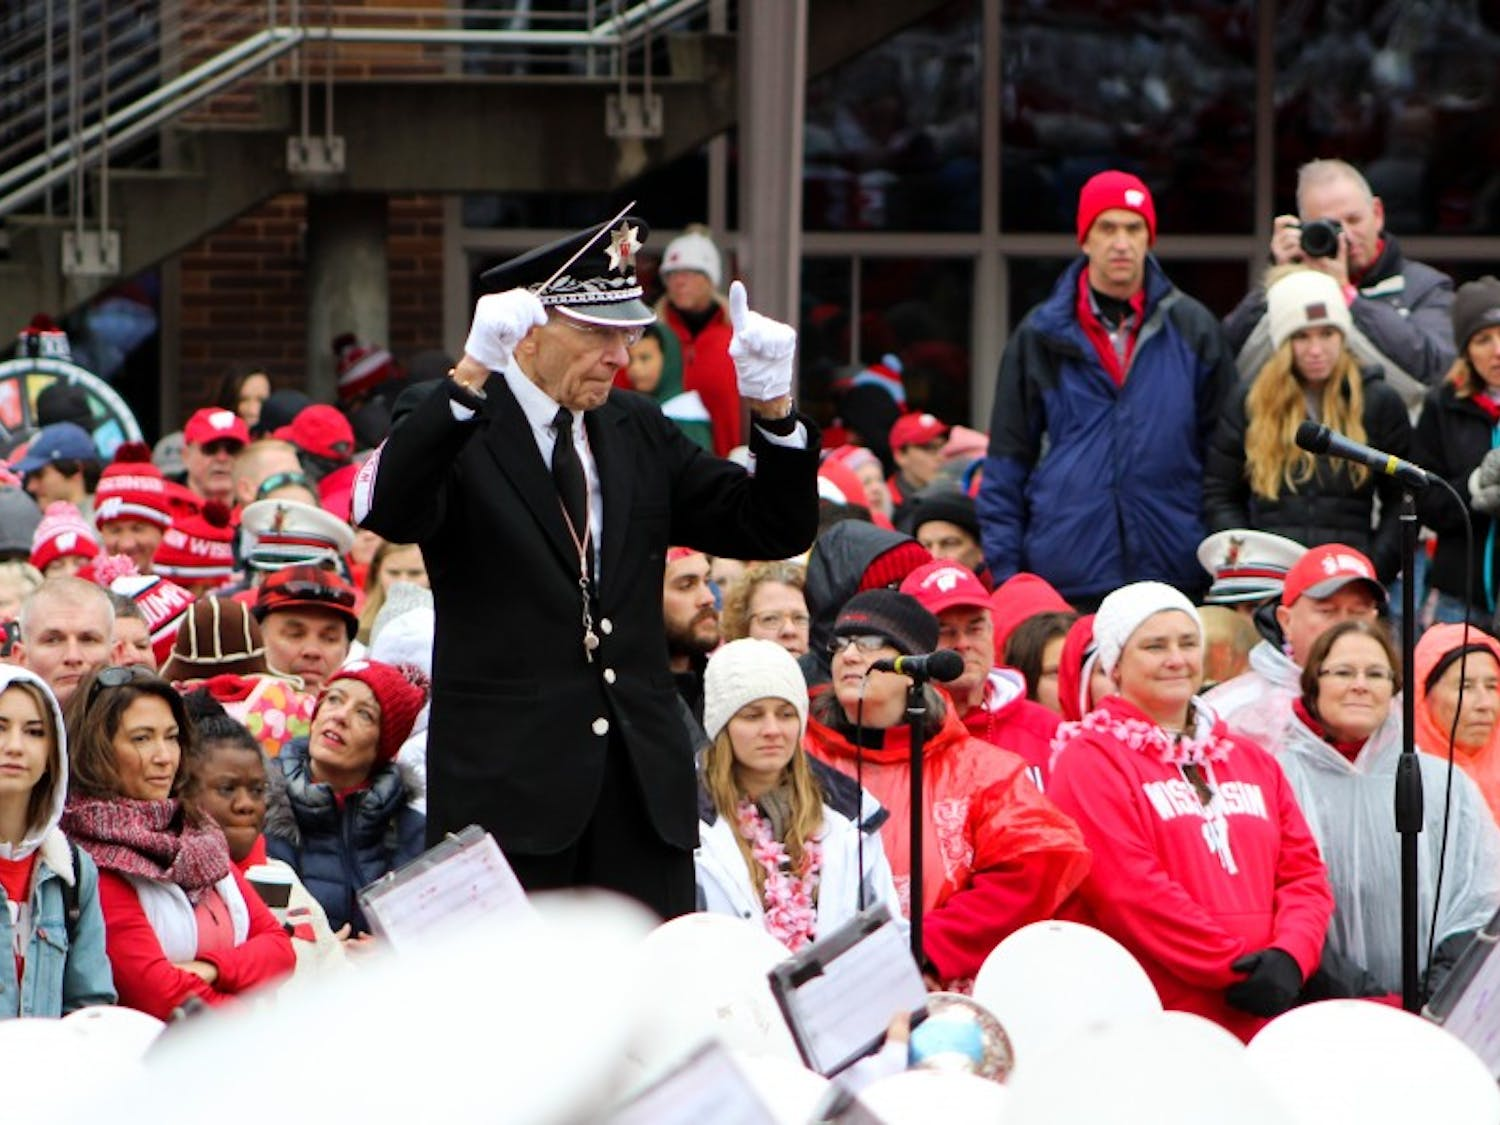 The UW Band Spring Show this week will be the last performance directed by veteran band-director Mike Leckrone.